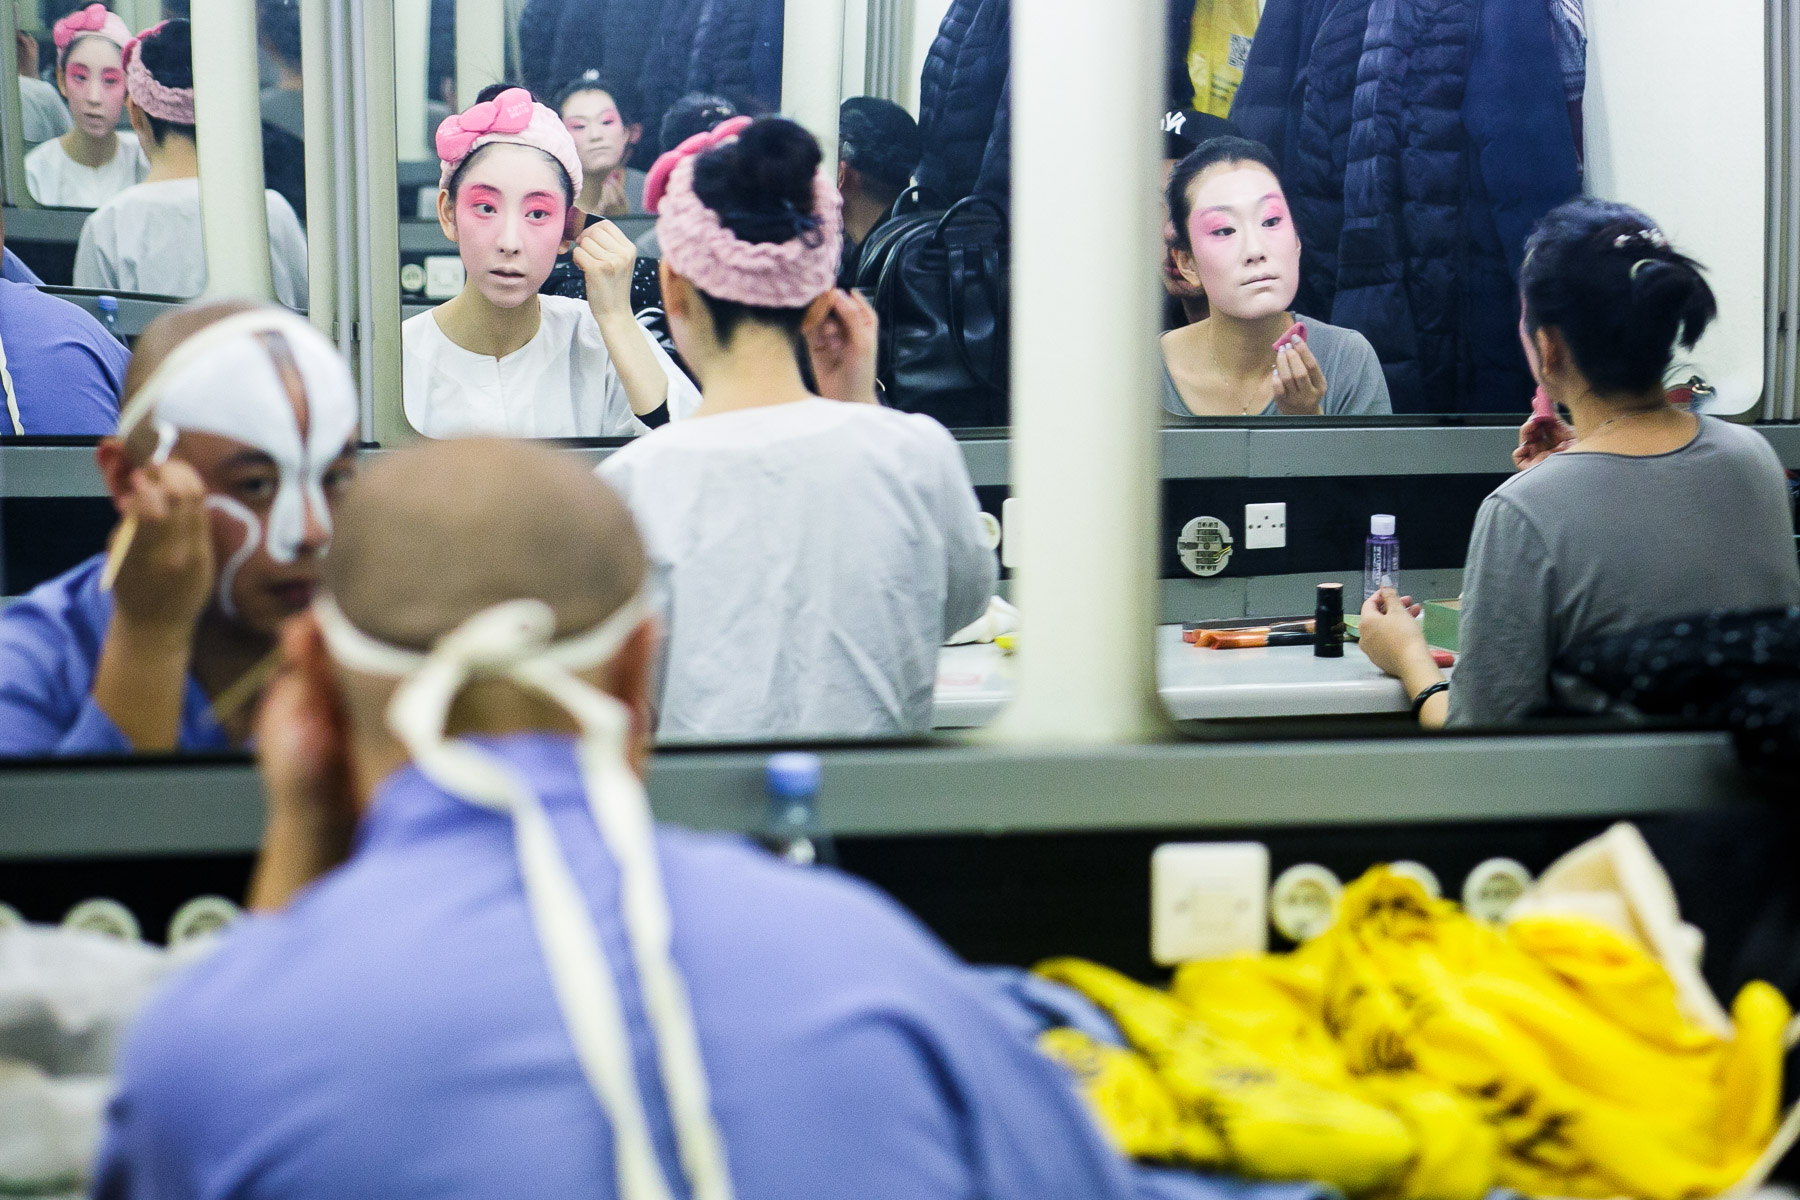 Actors put on makeup before the China National Peking Opera Company performance of the Monkey King in Cankarjev dom Culture and Congress Center in Ljubljana, Slovenia, Dec. 31, 2015.